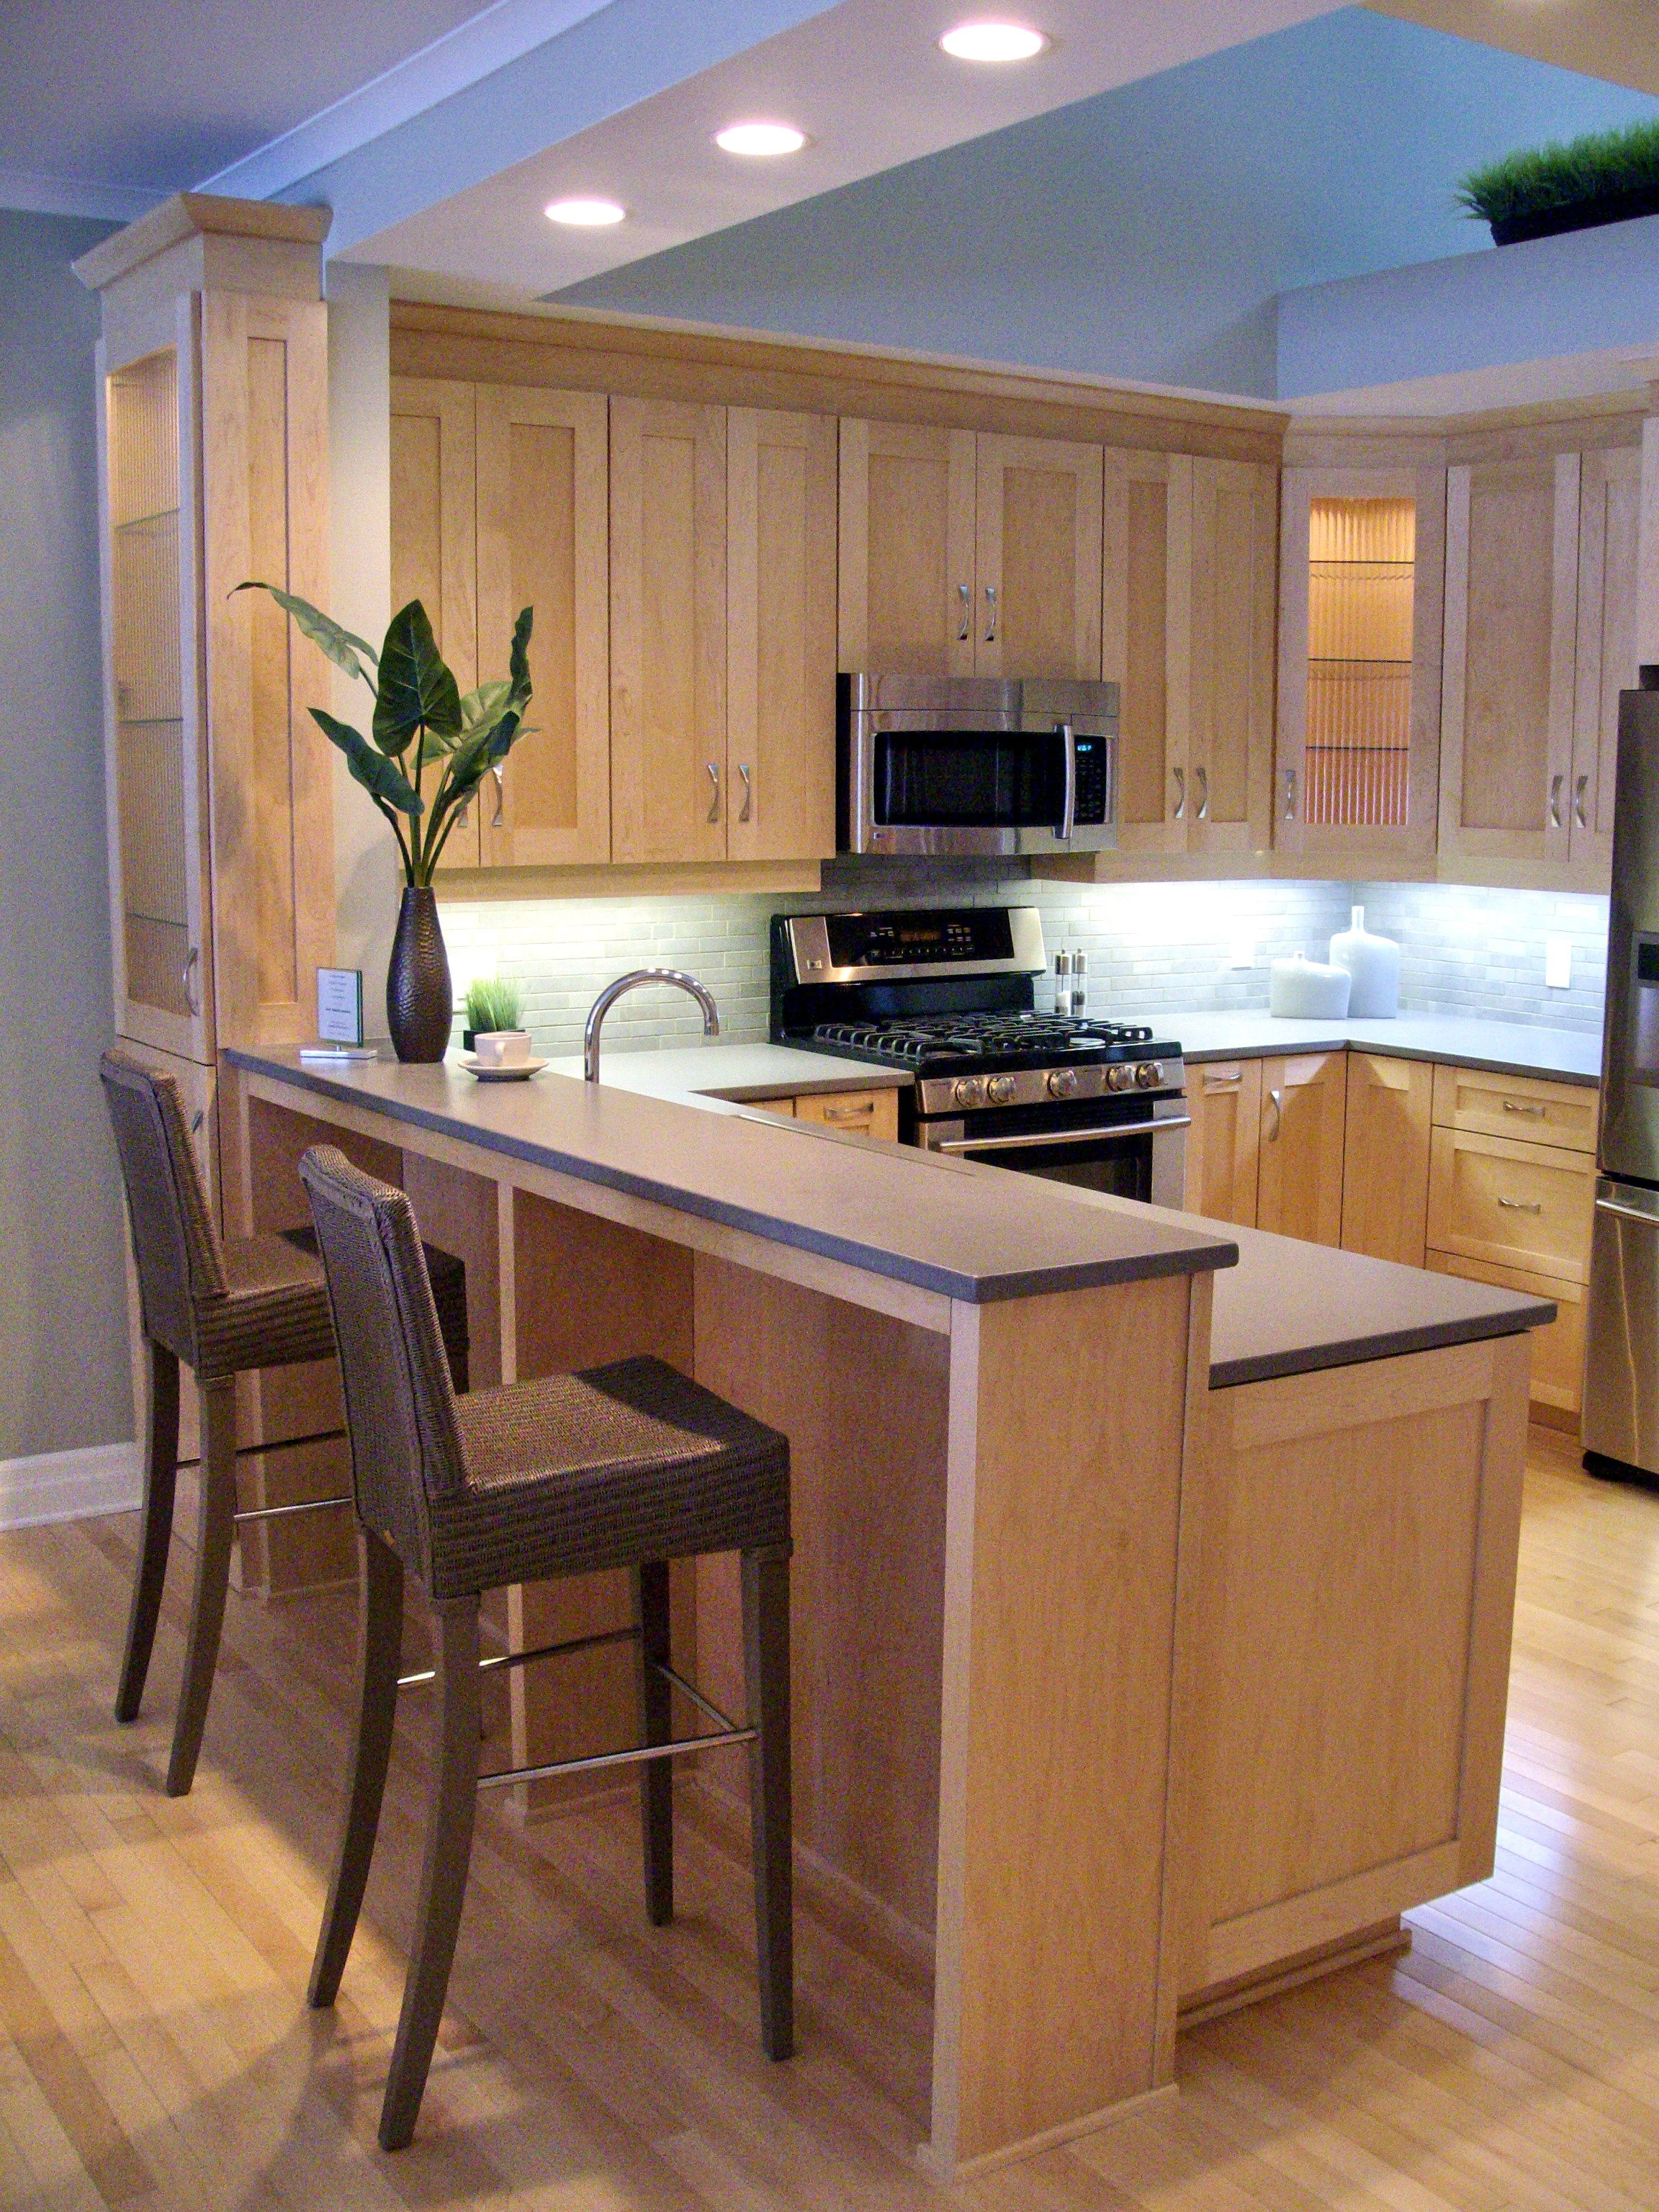 natural maple shaker cabinets, with grey silestone quartz